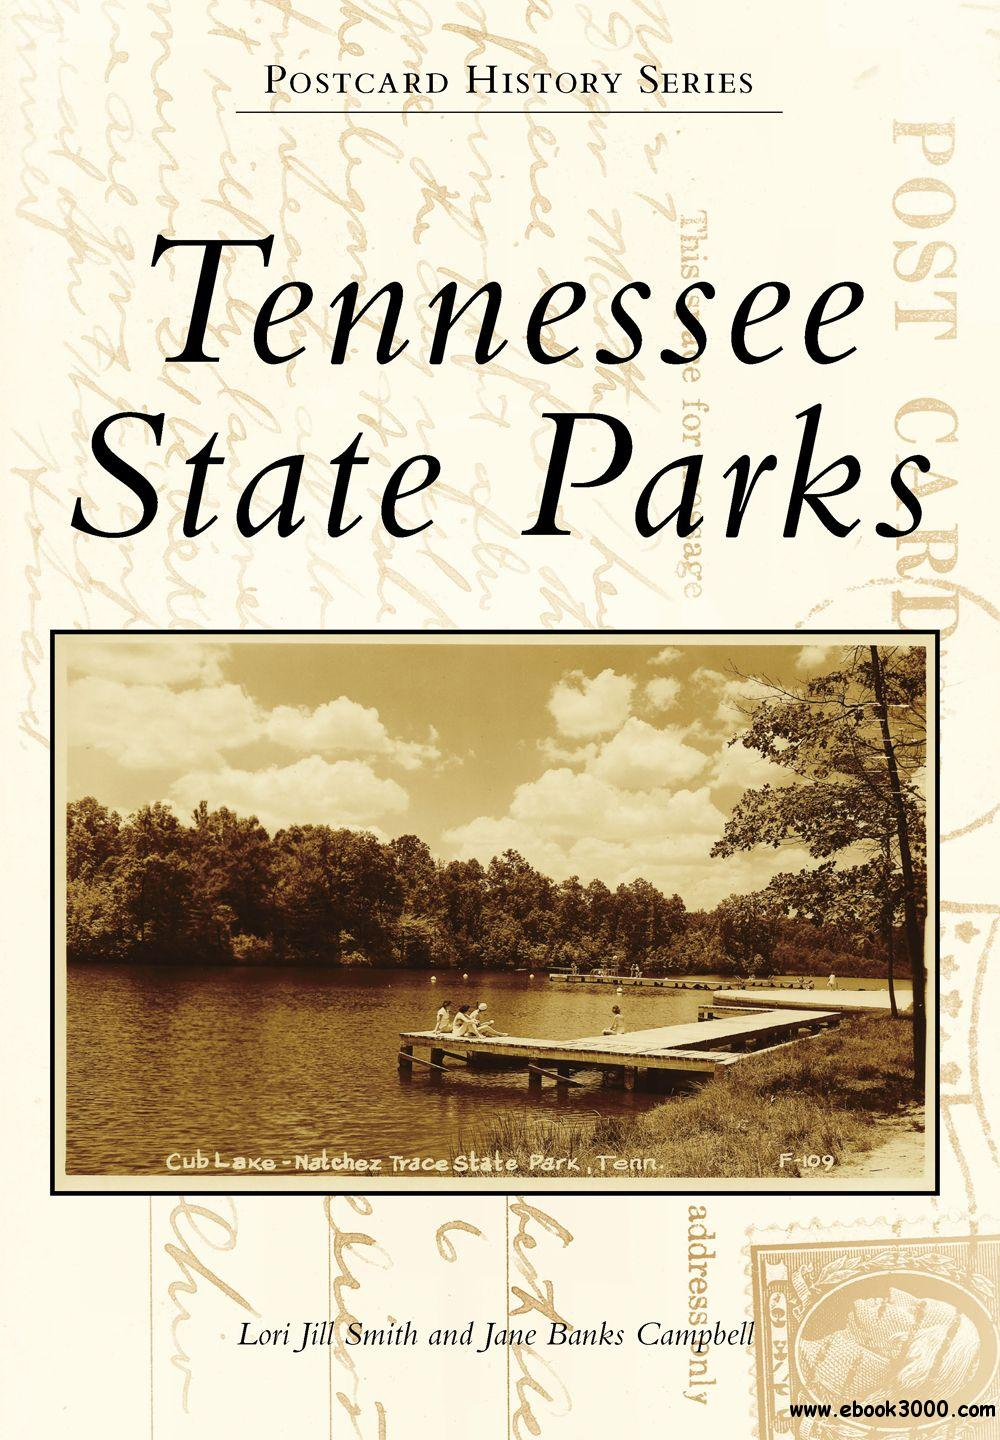 Tennessee State Parks (Postcard History Series)